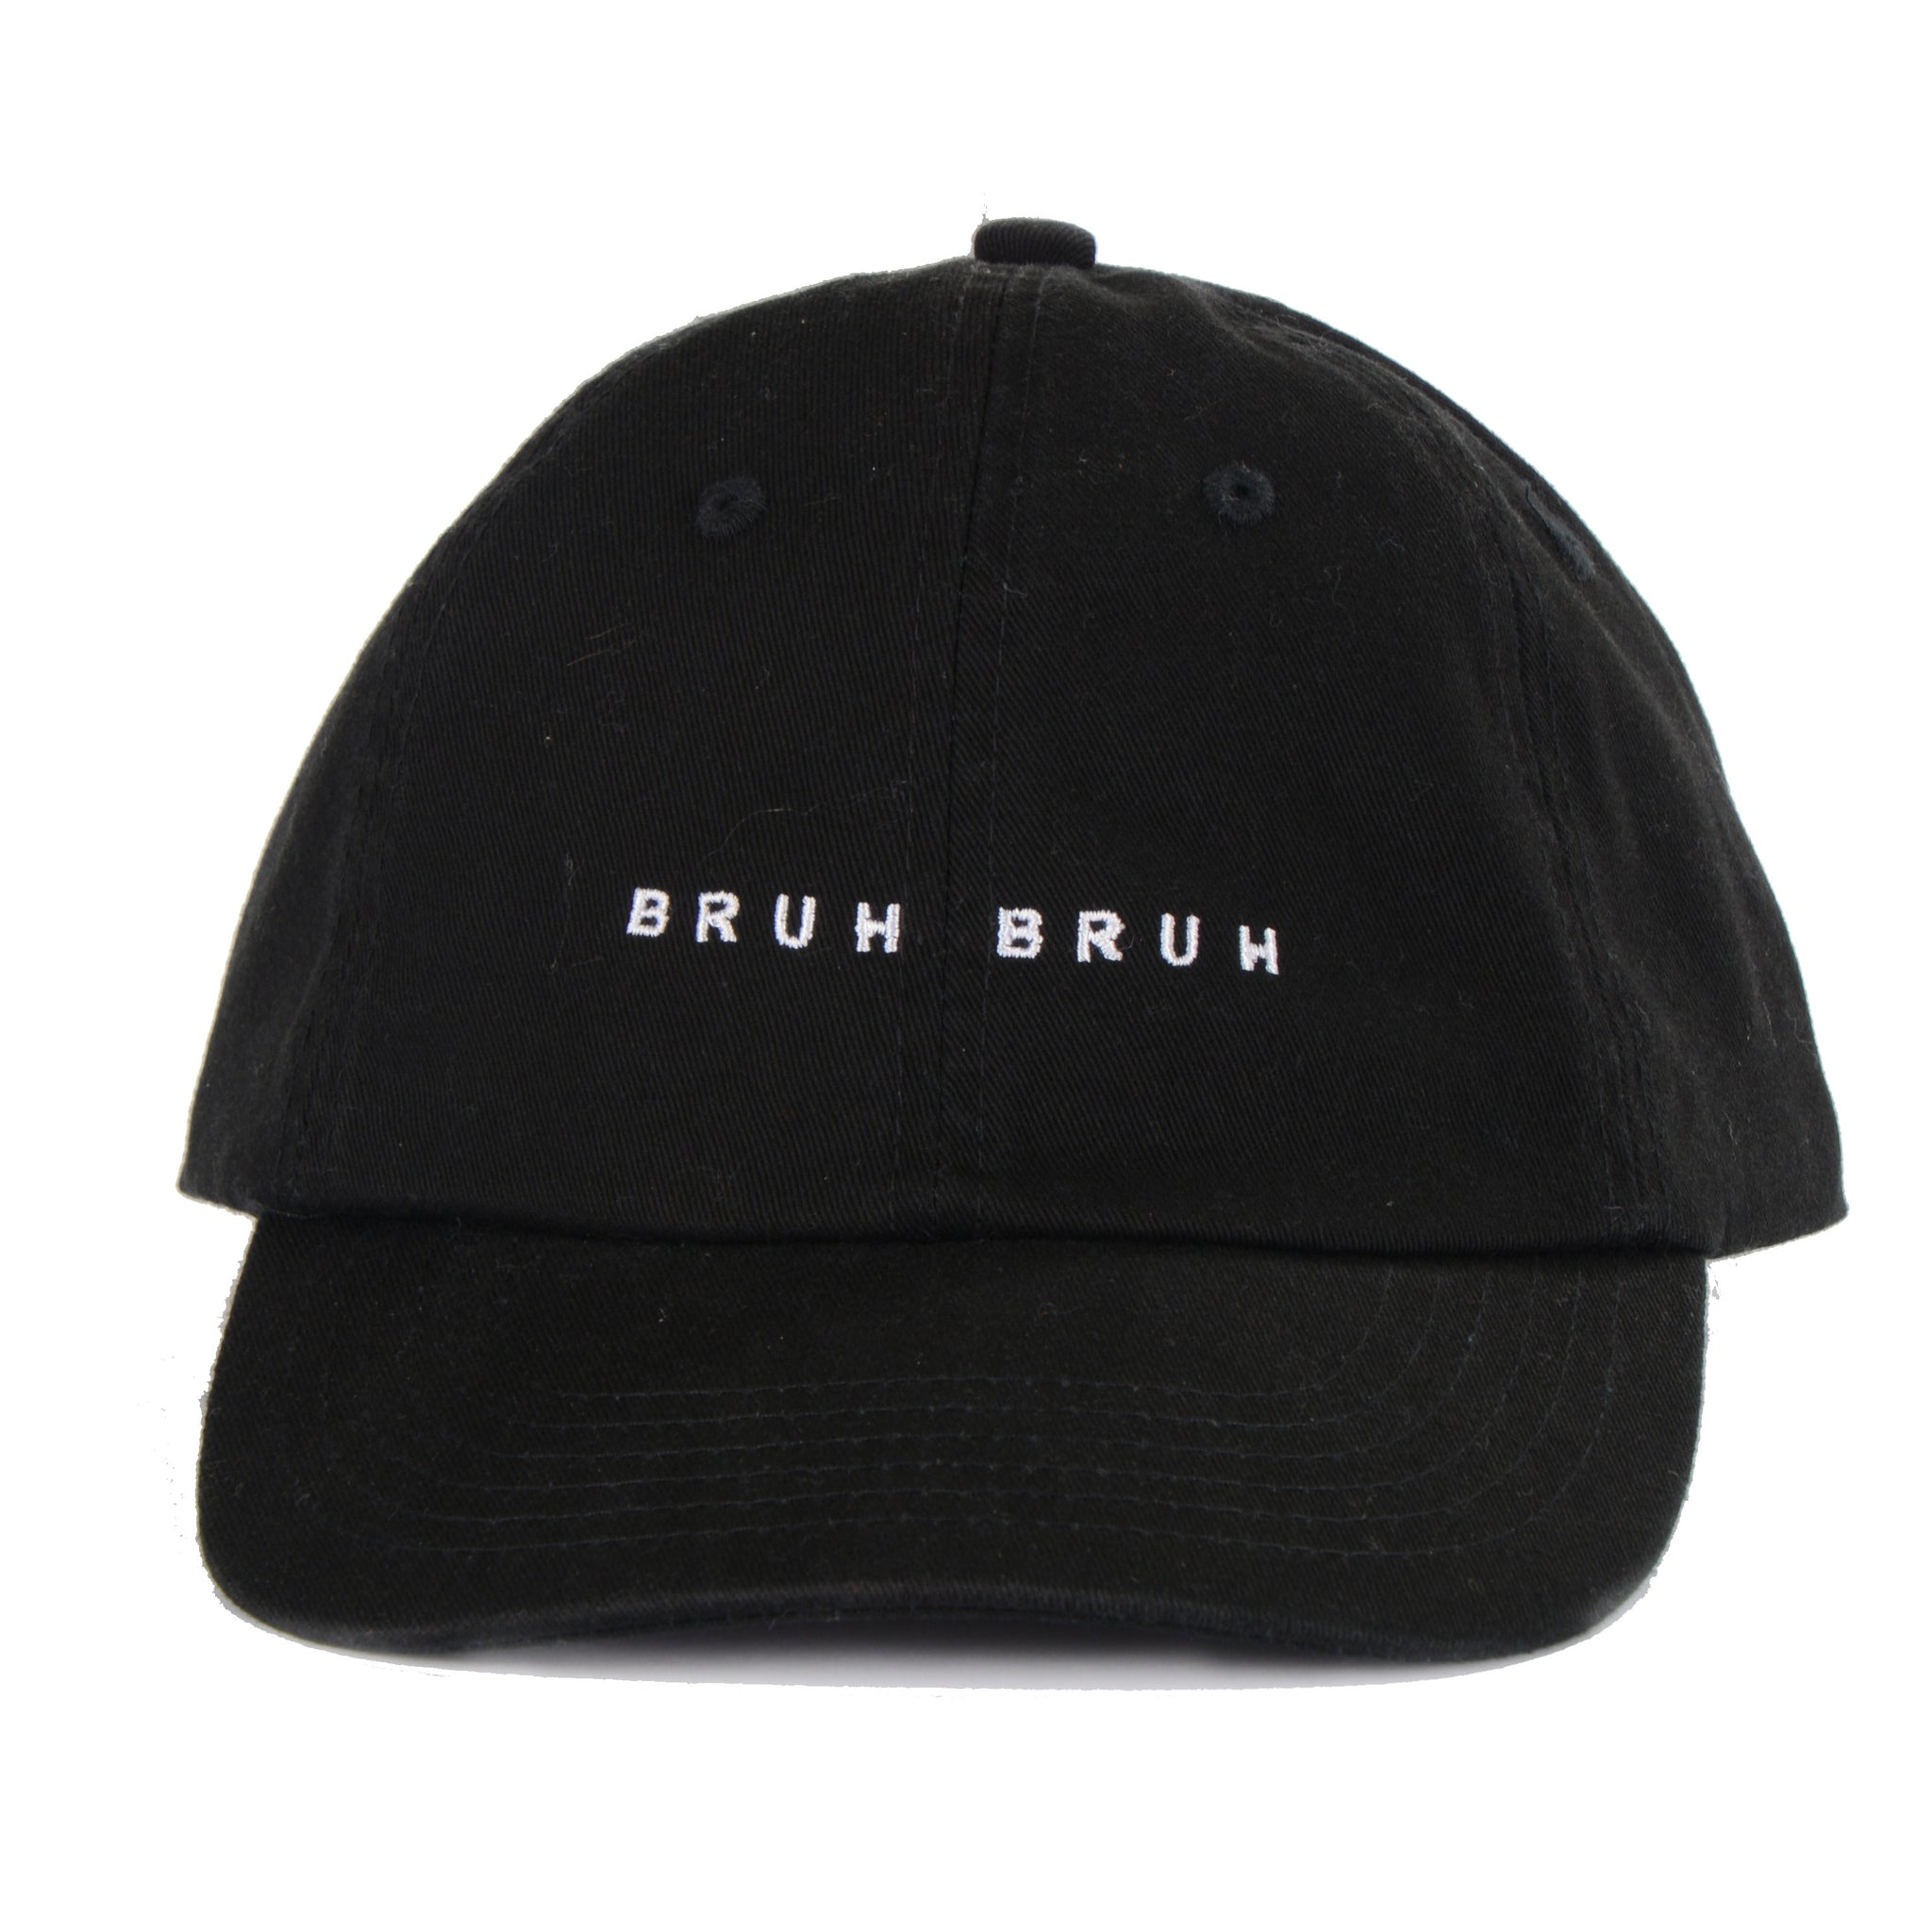 Bruh Bruh Dad Hat Old Merch - Black